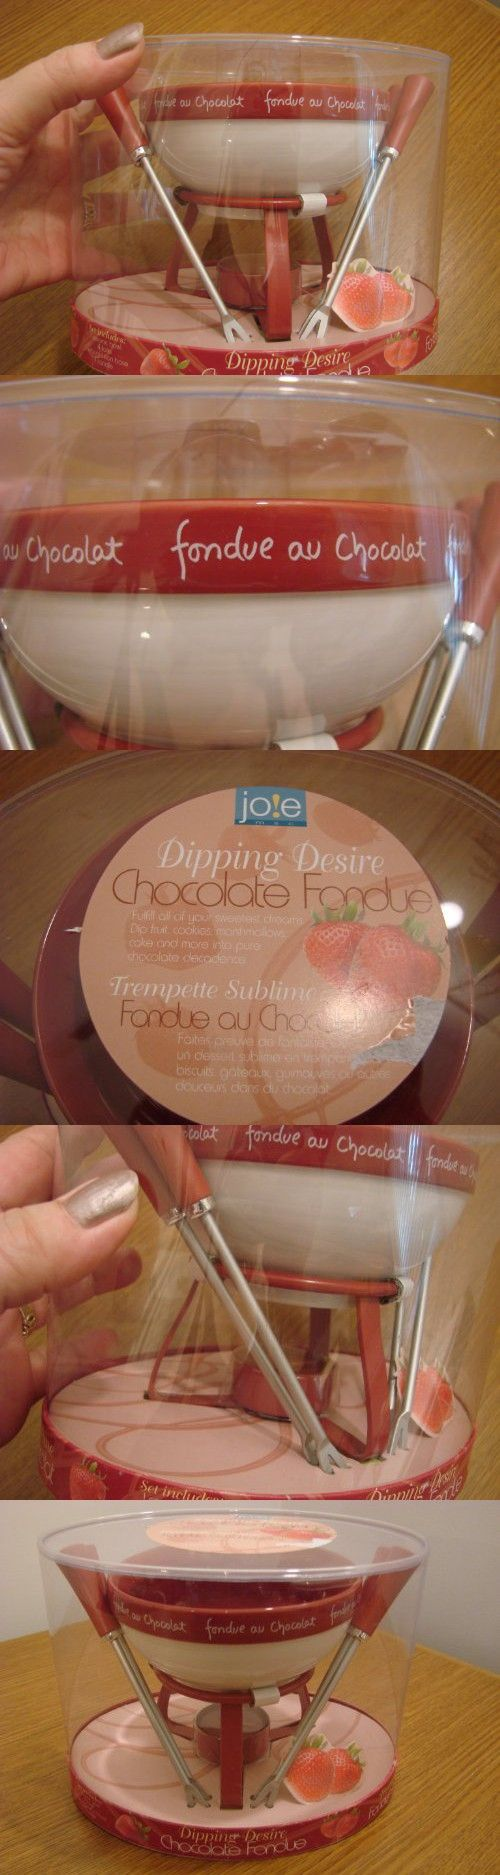 Joie Dipping Desire Chocolate Fondue Set w/4 Forks New in Box